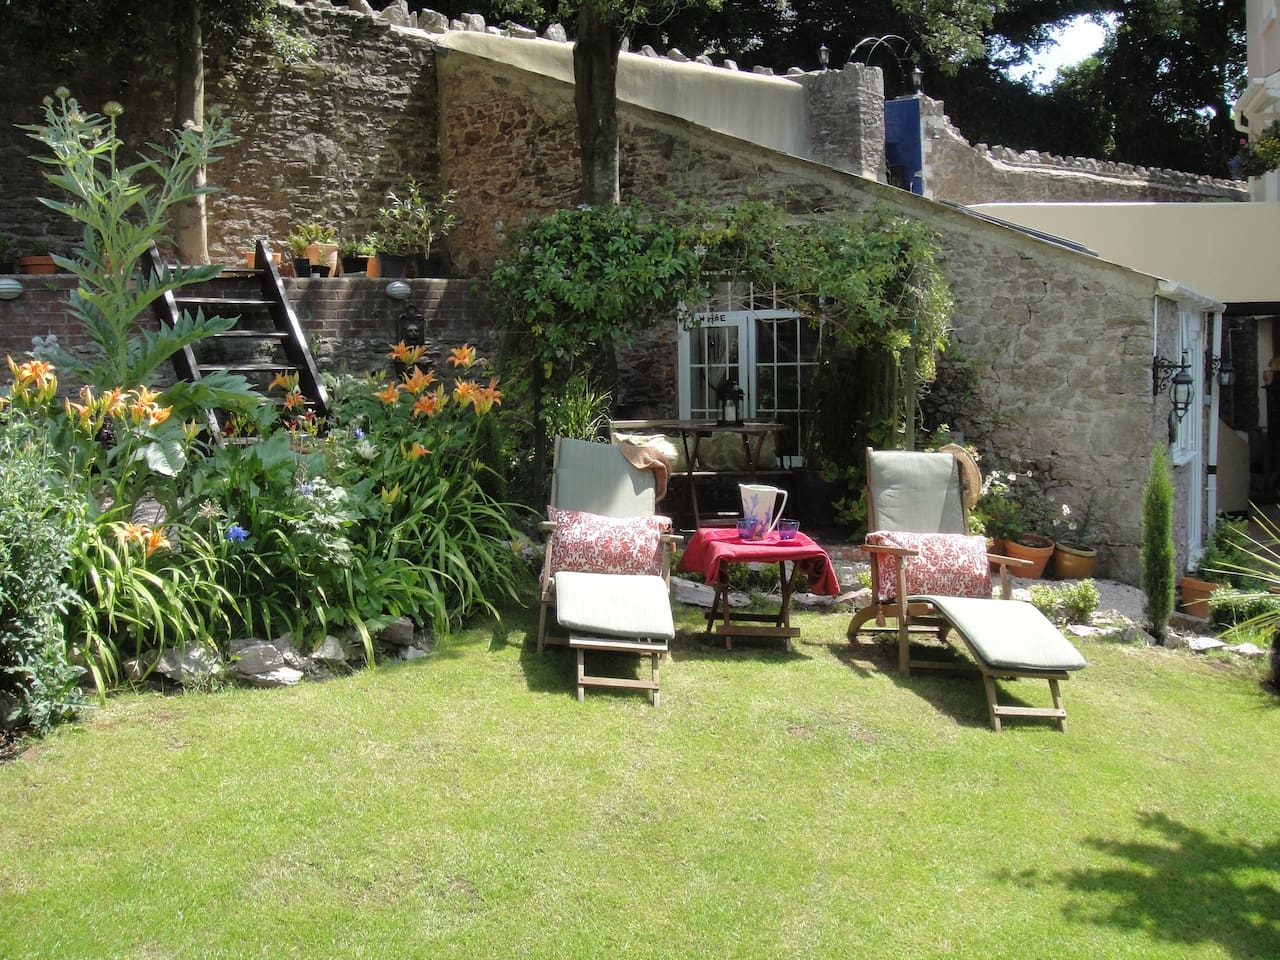 Enjoy the sunshine and a glass of Pimms in our sunny garden after a hard days' sightseeing or walking